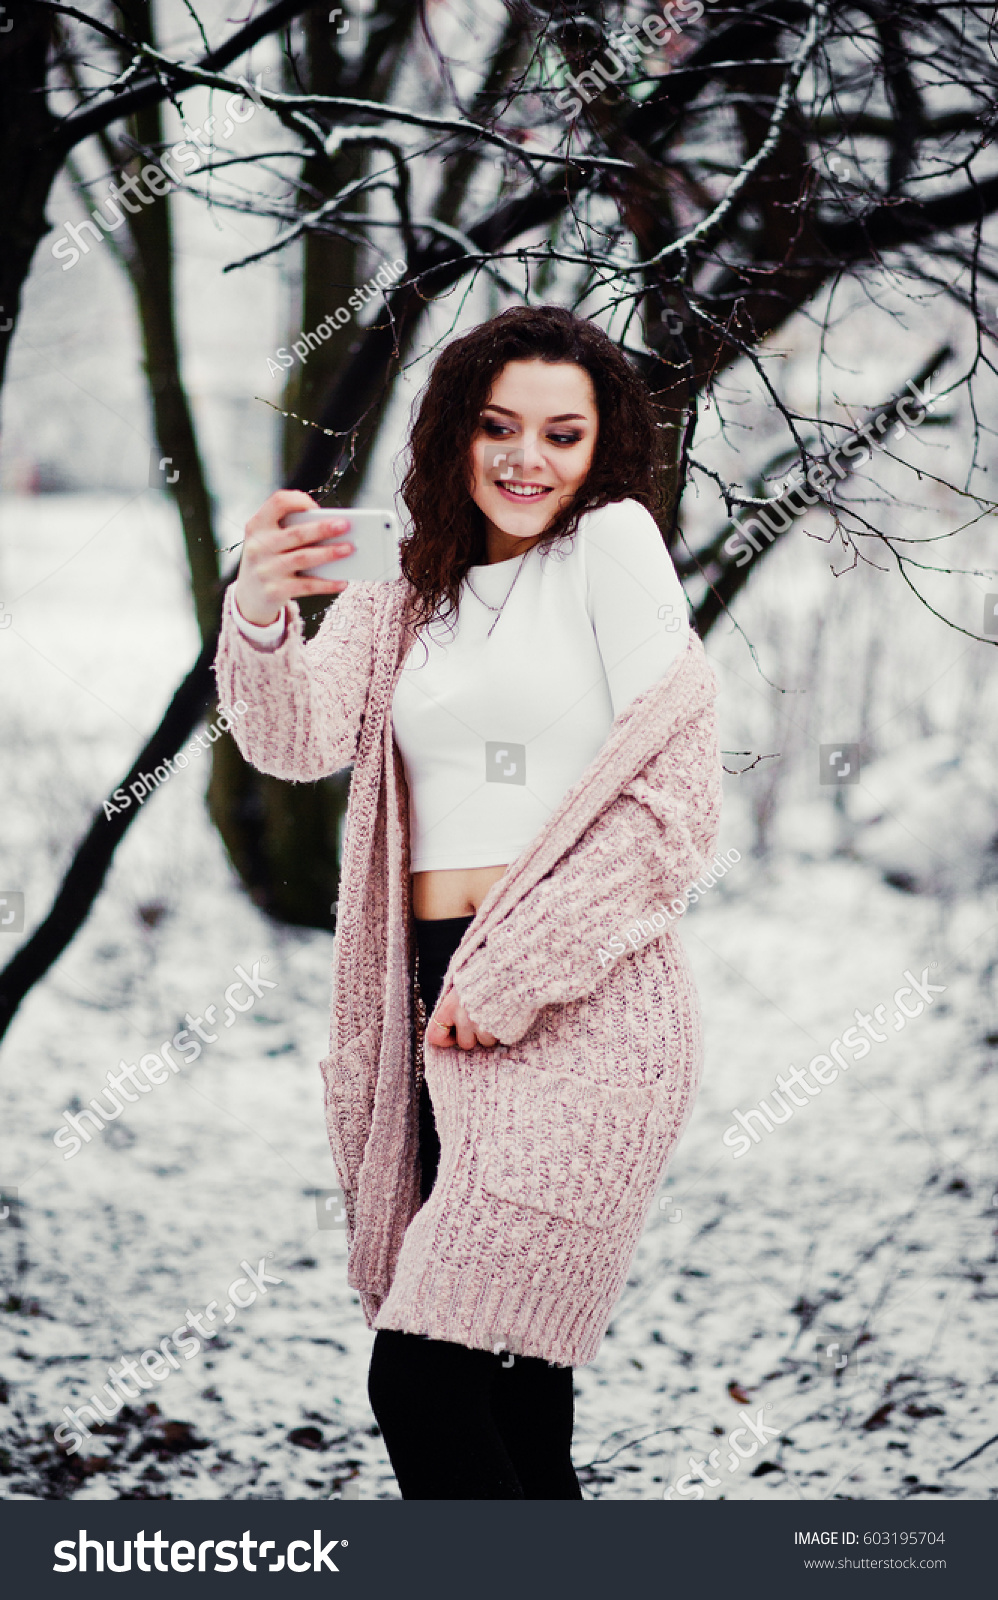 e637cbfac7 Curly brunette girl with mobile phone at hand making selfie background  falling snow